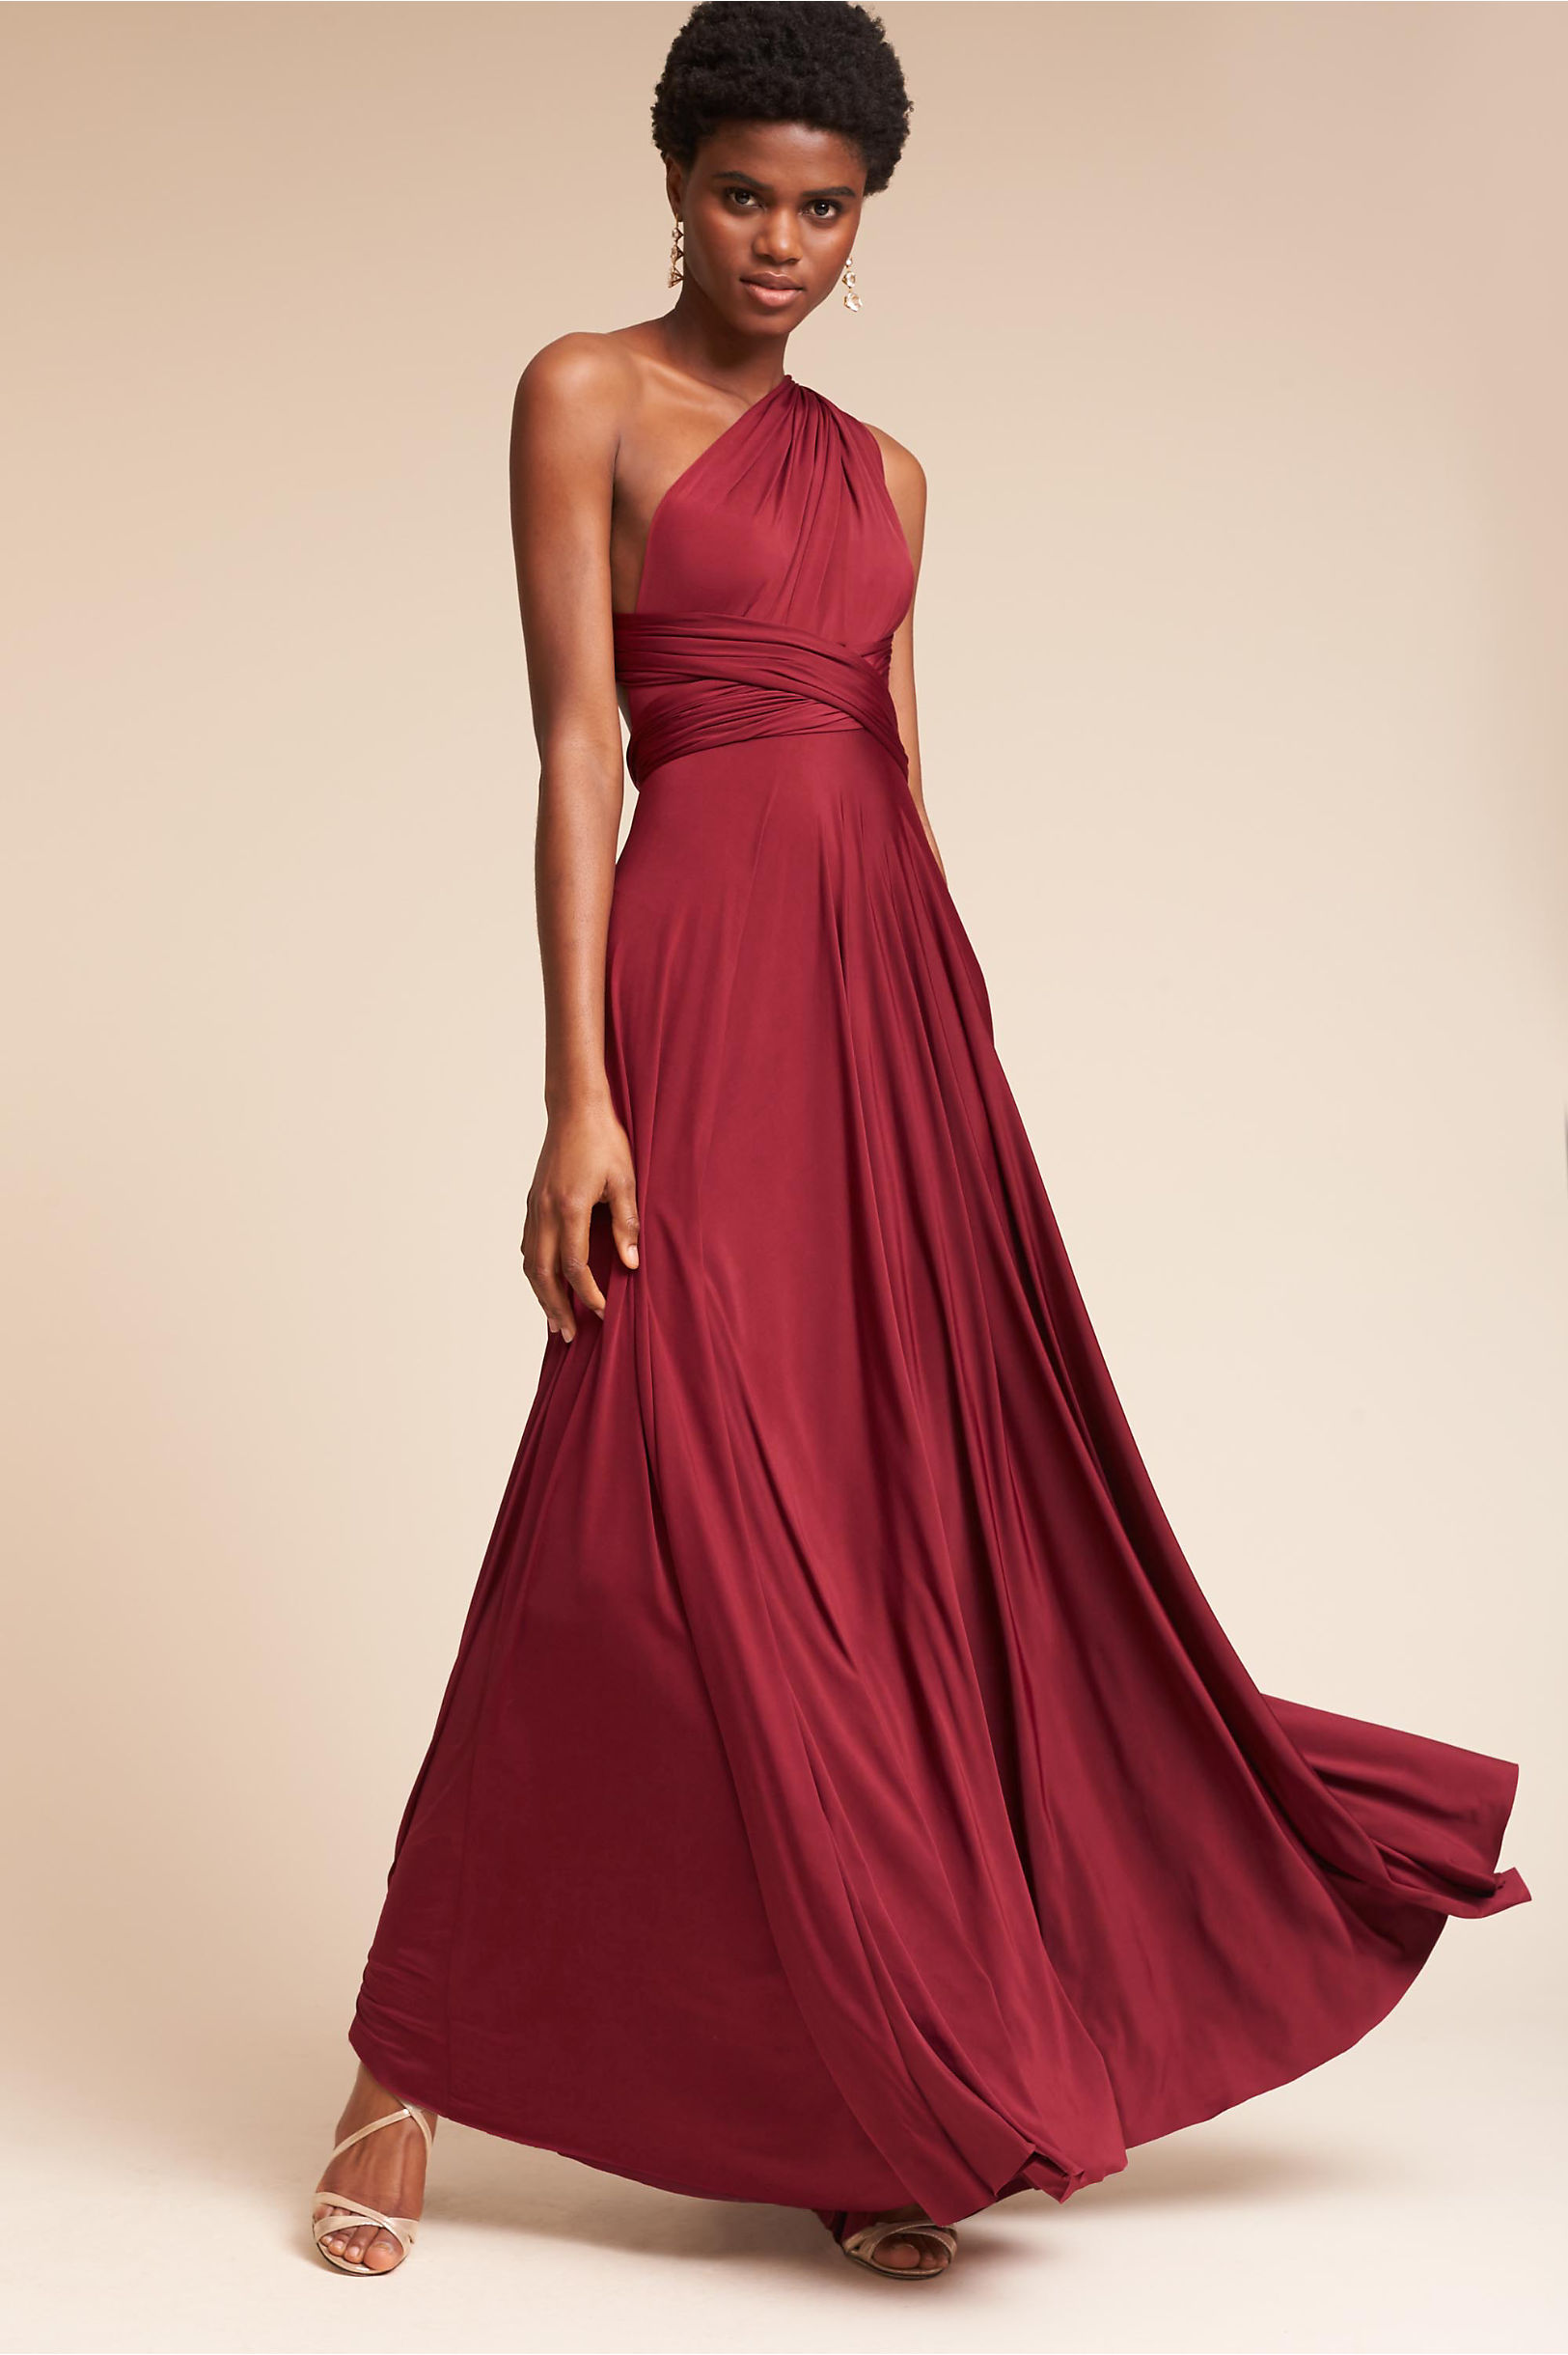 Burgundy red wine colored bridesmaid dresses bhldn ginger convertible maxi dress ombrellifo Choice Image